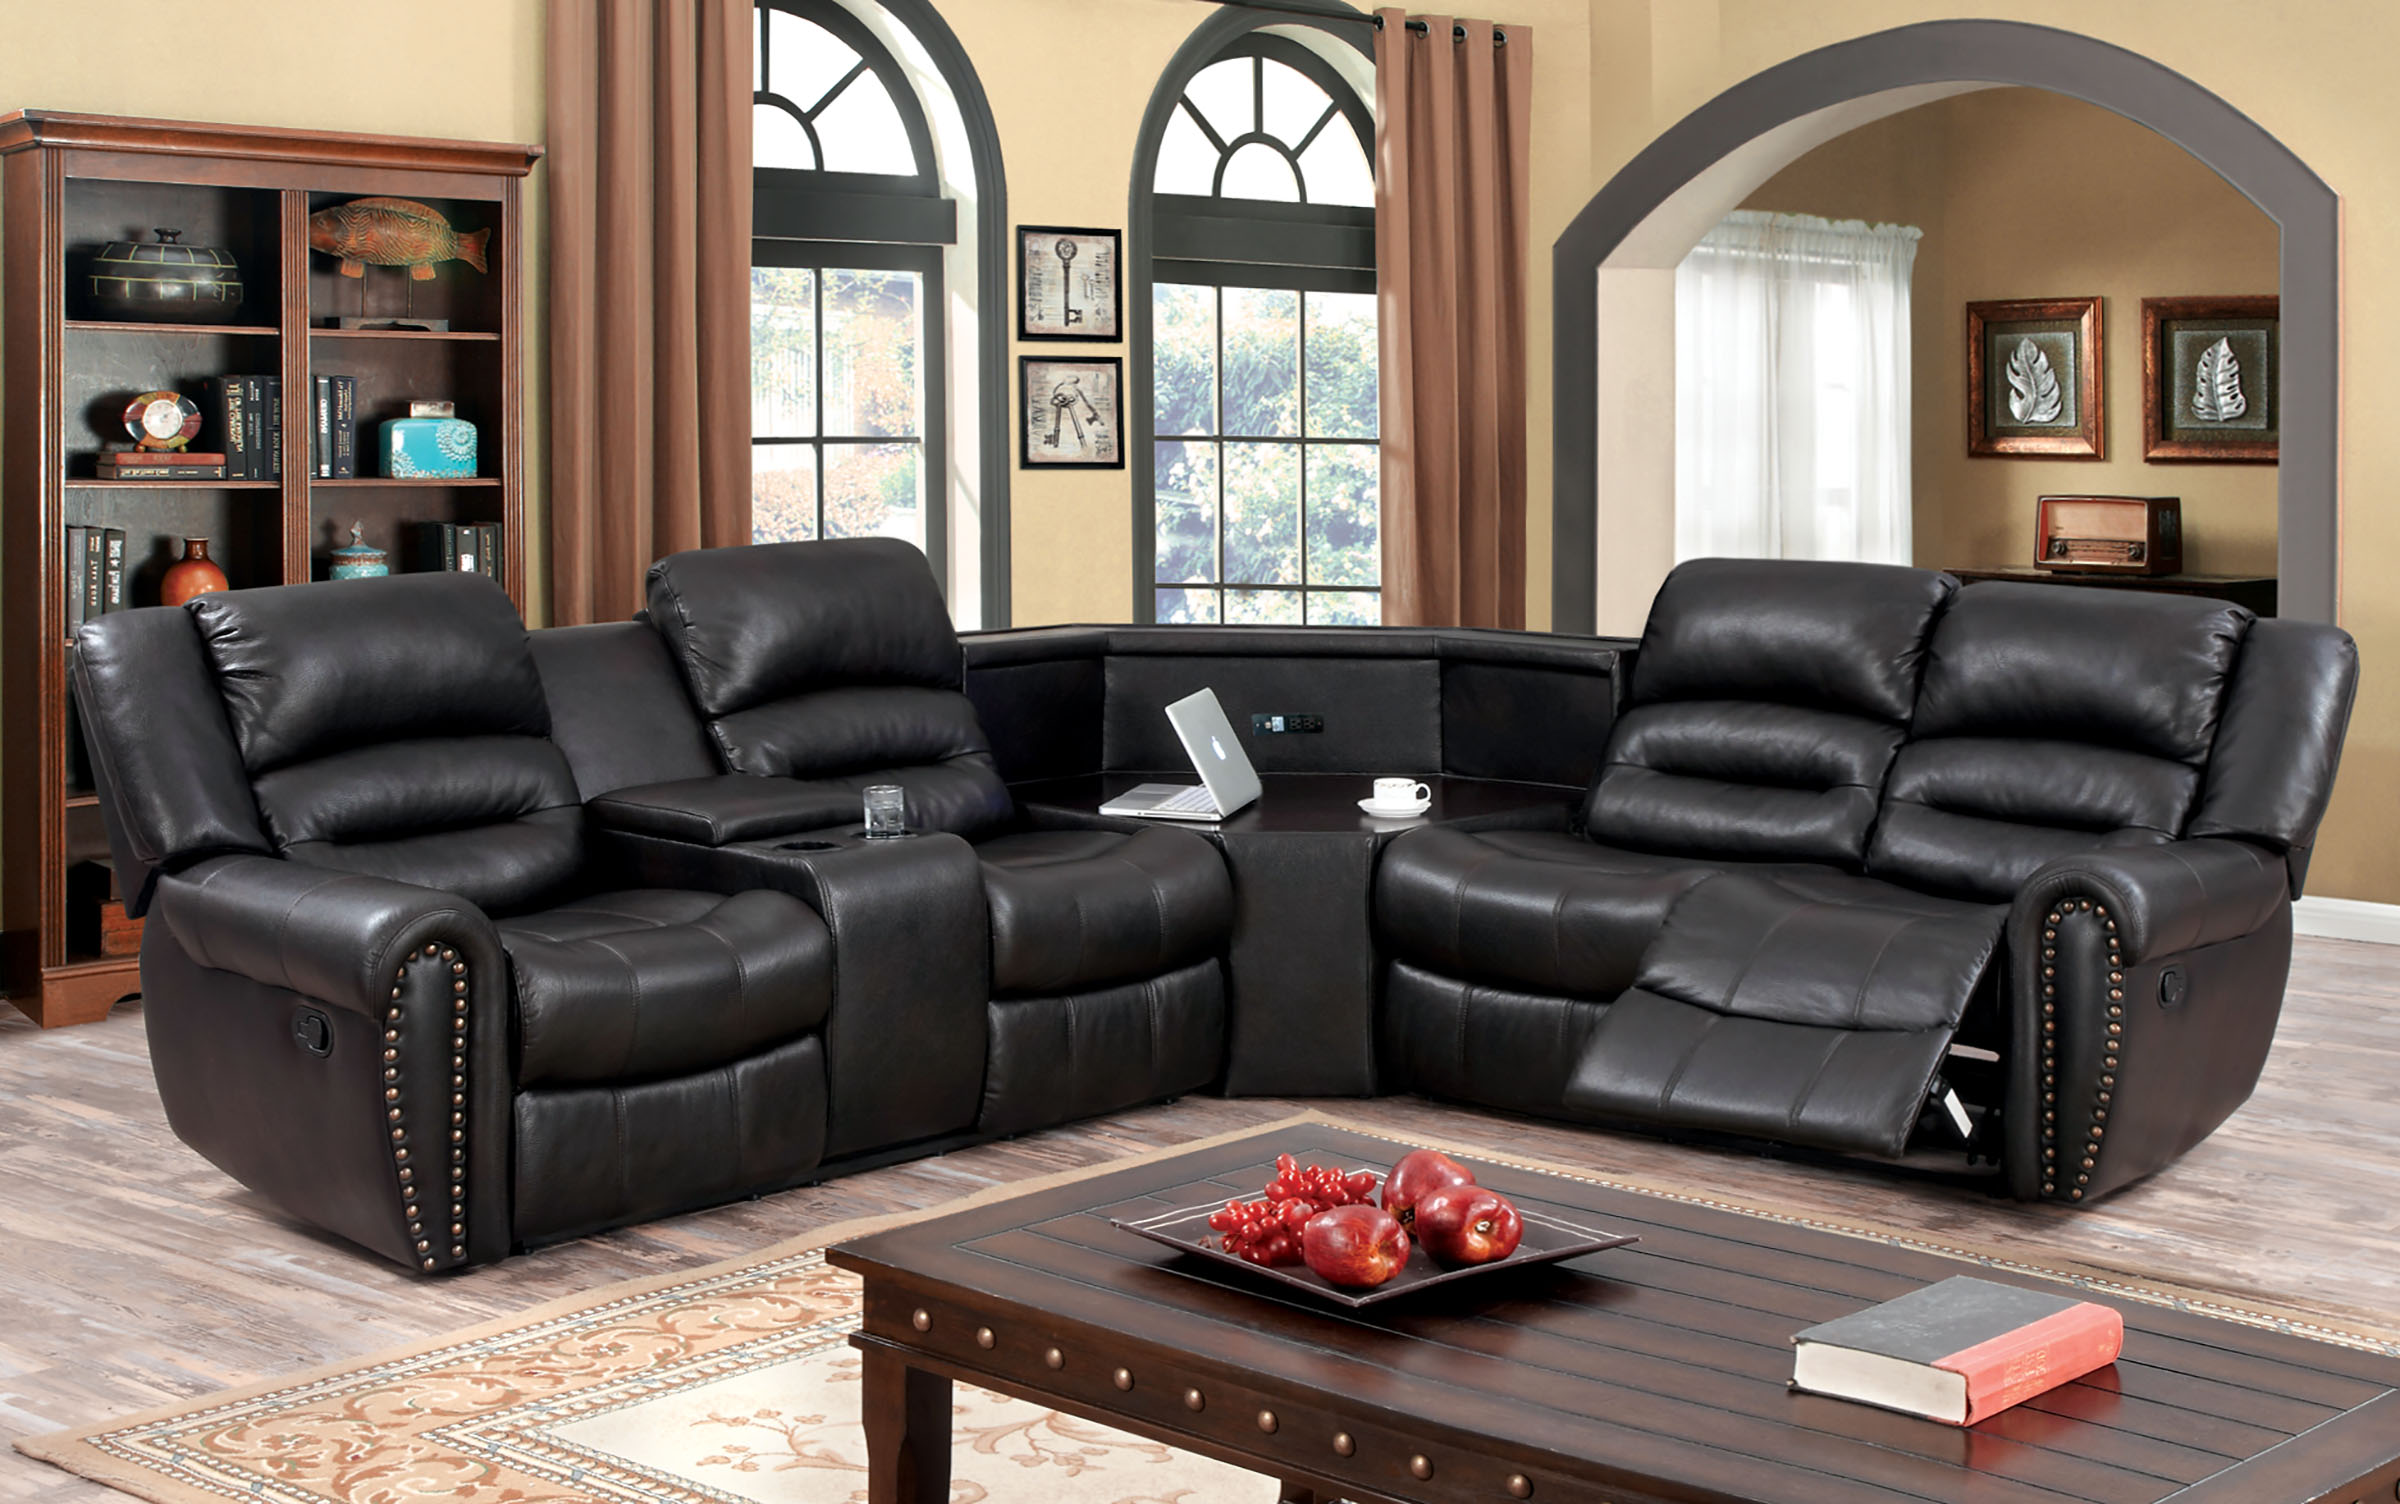 Sectional W Recliner The Imperial Furniture ~ Sofa Bed Sectional With Recliner